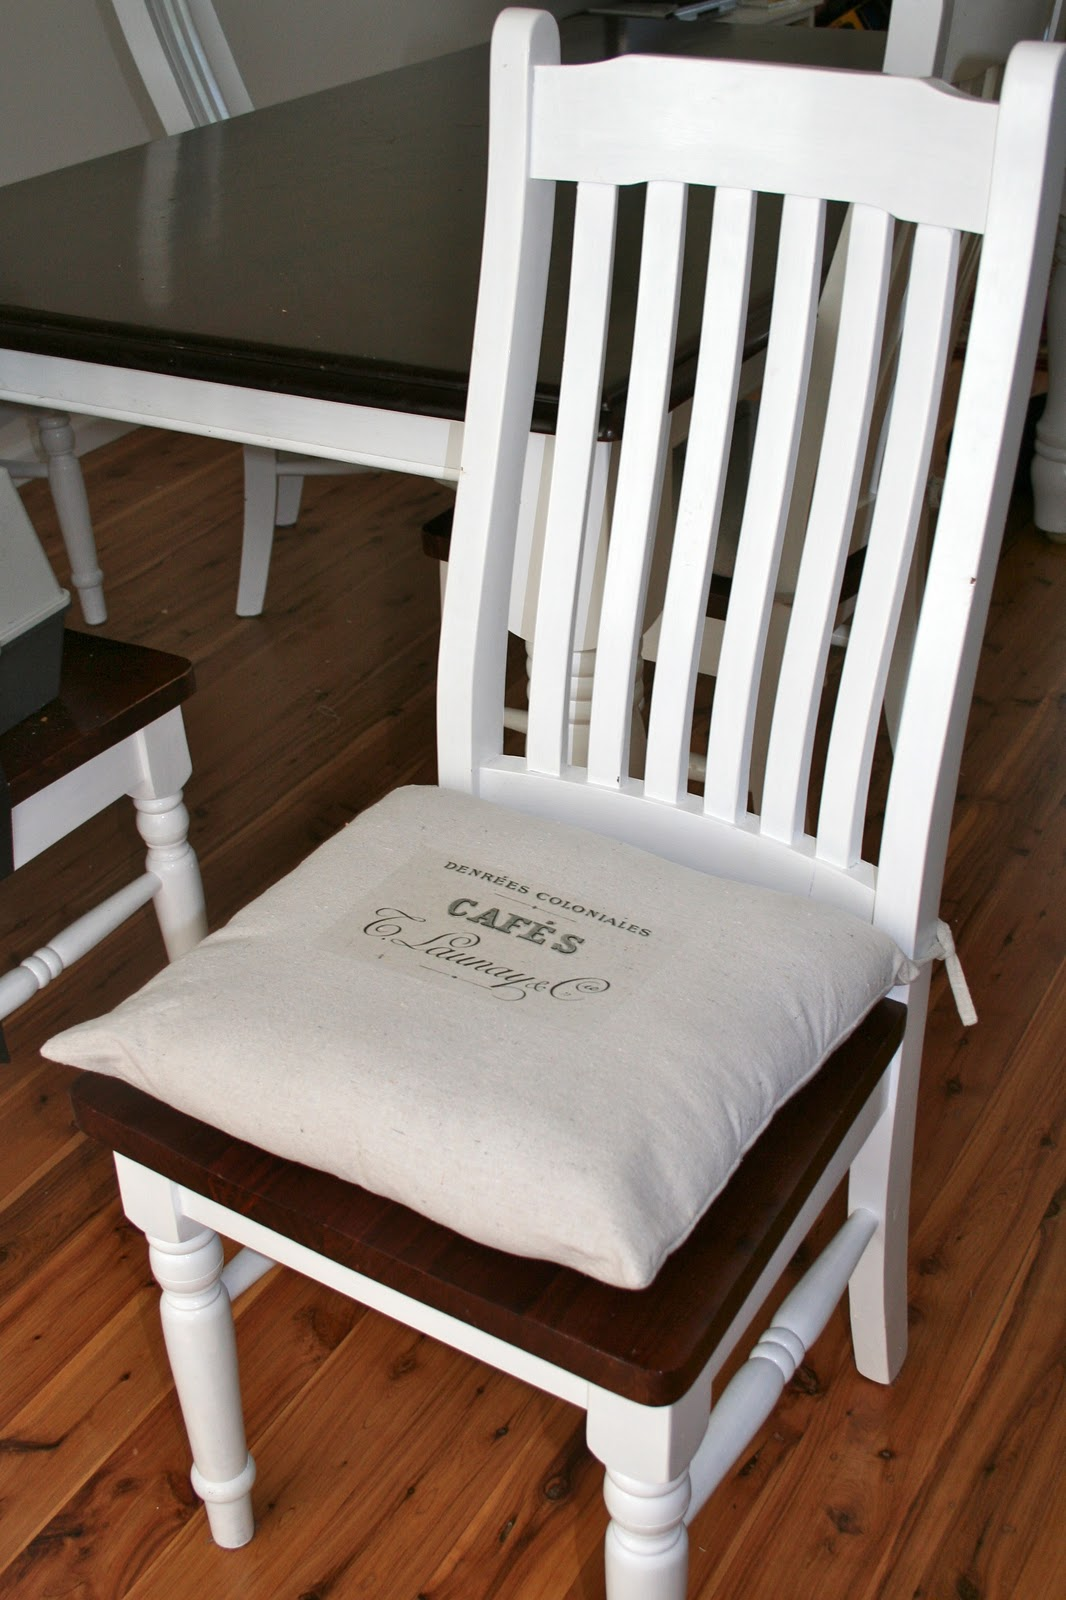 Chair Cushions With Tie Backs Lumbar Support For Office Vintage Cafe Drop Cloth Back